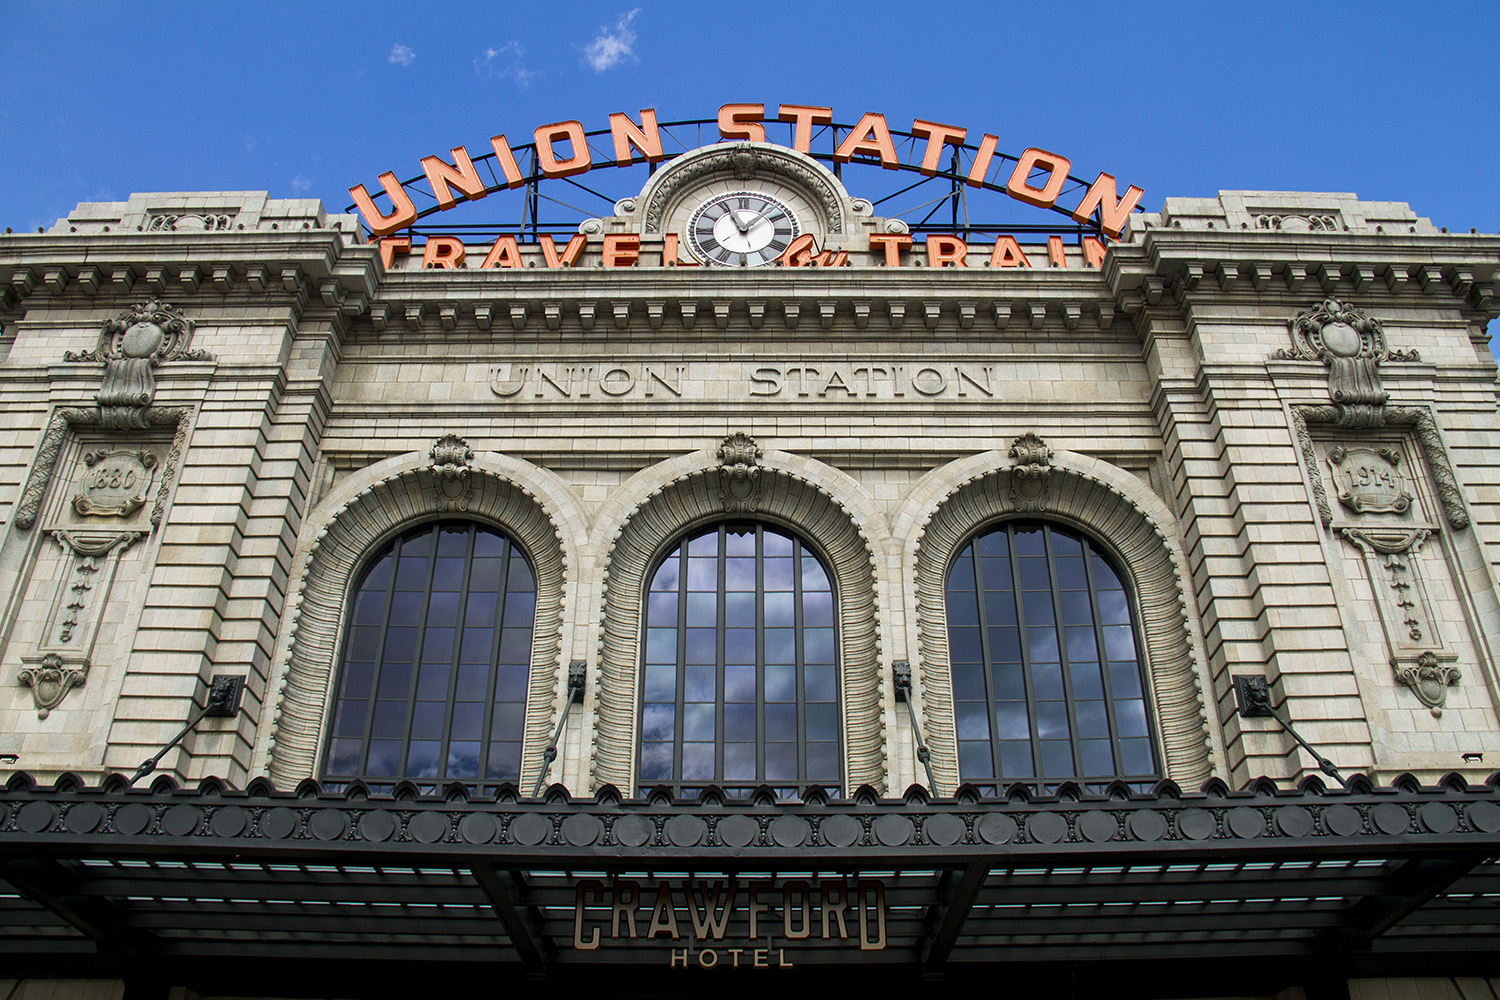 Denver's Union Station  denver; colorado; downtown; lodo; denverite; transportation; union station; landmark; train